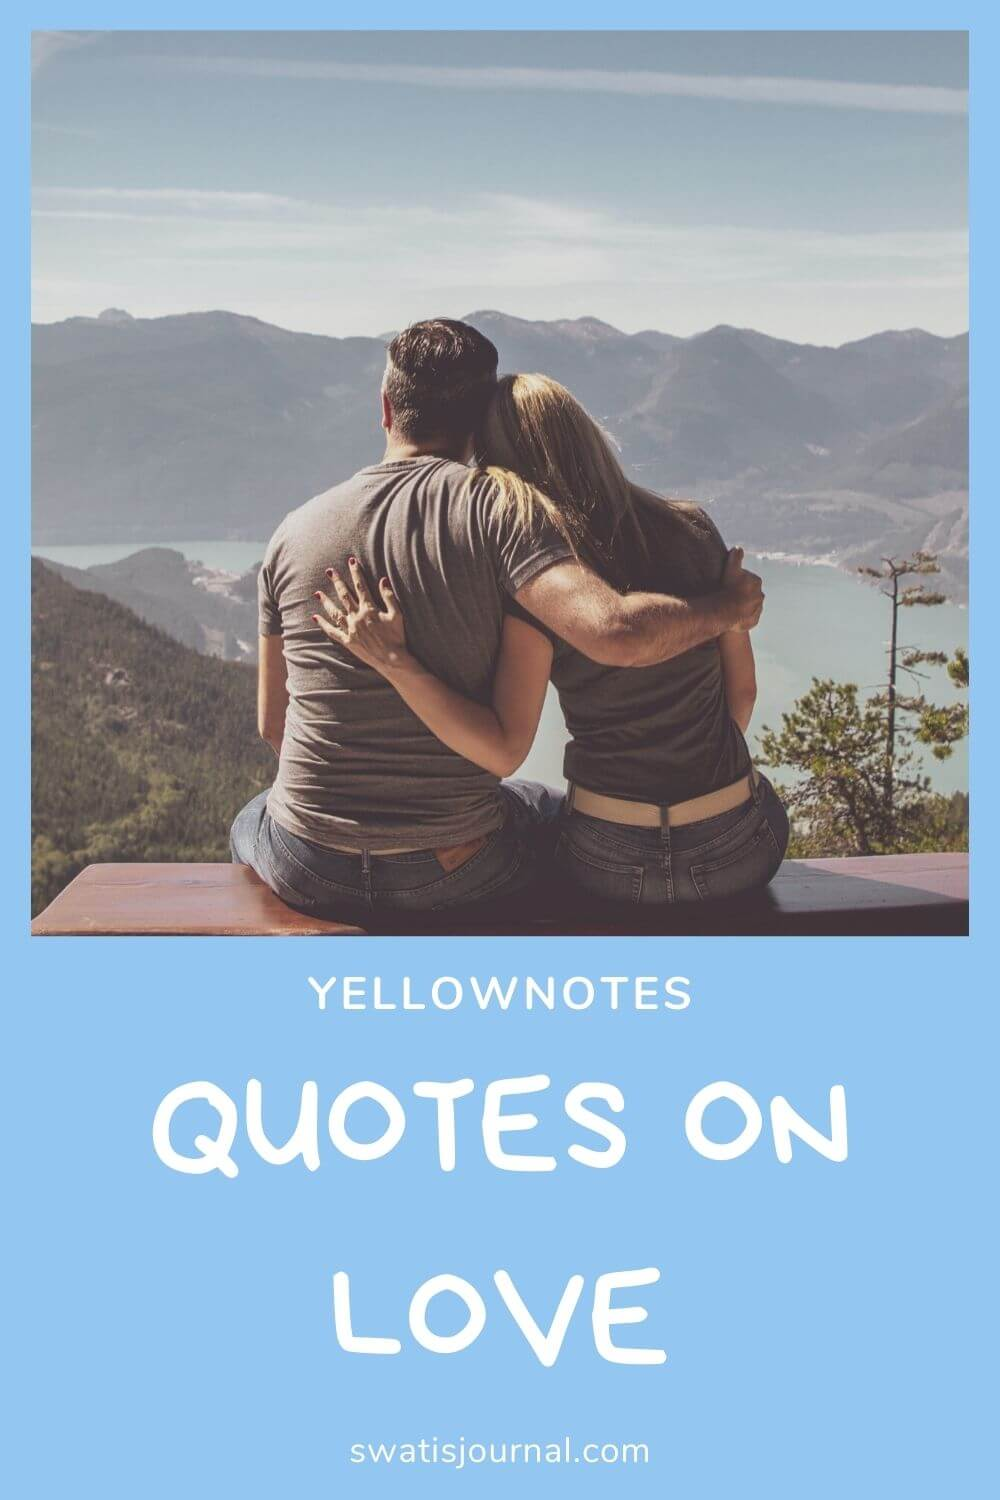 Yellownotes – Daily Quotes | Quote of the Week | January 2020 | Week 04 0 (0)